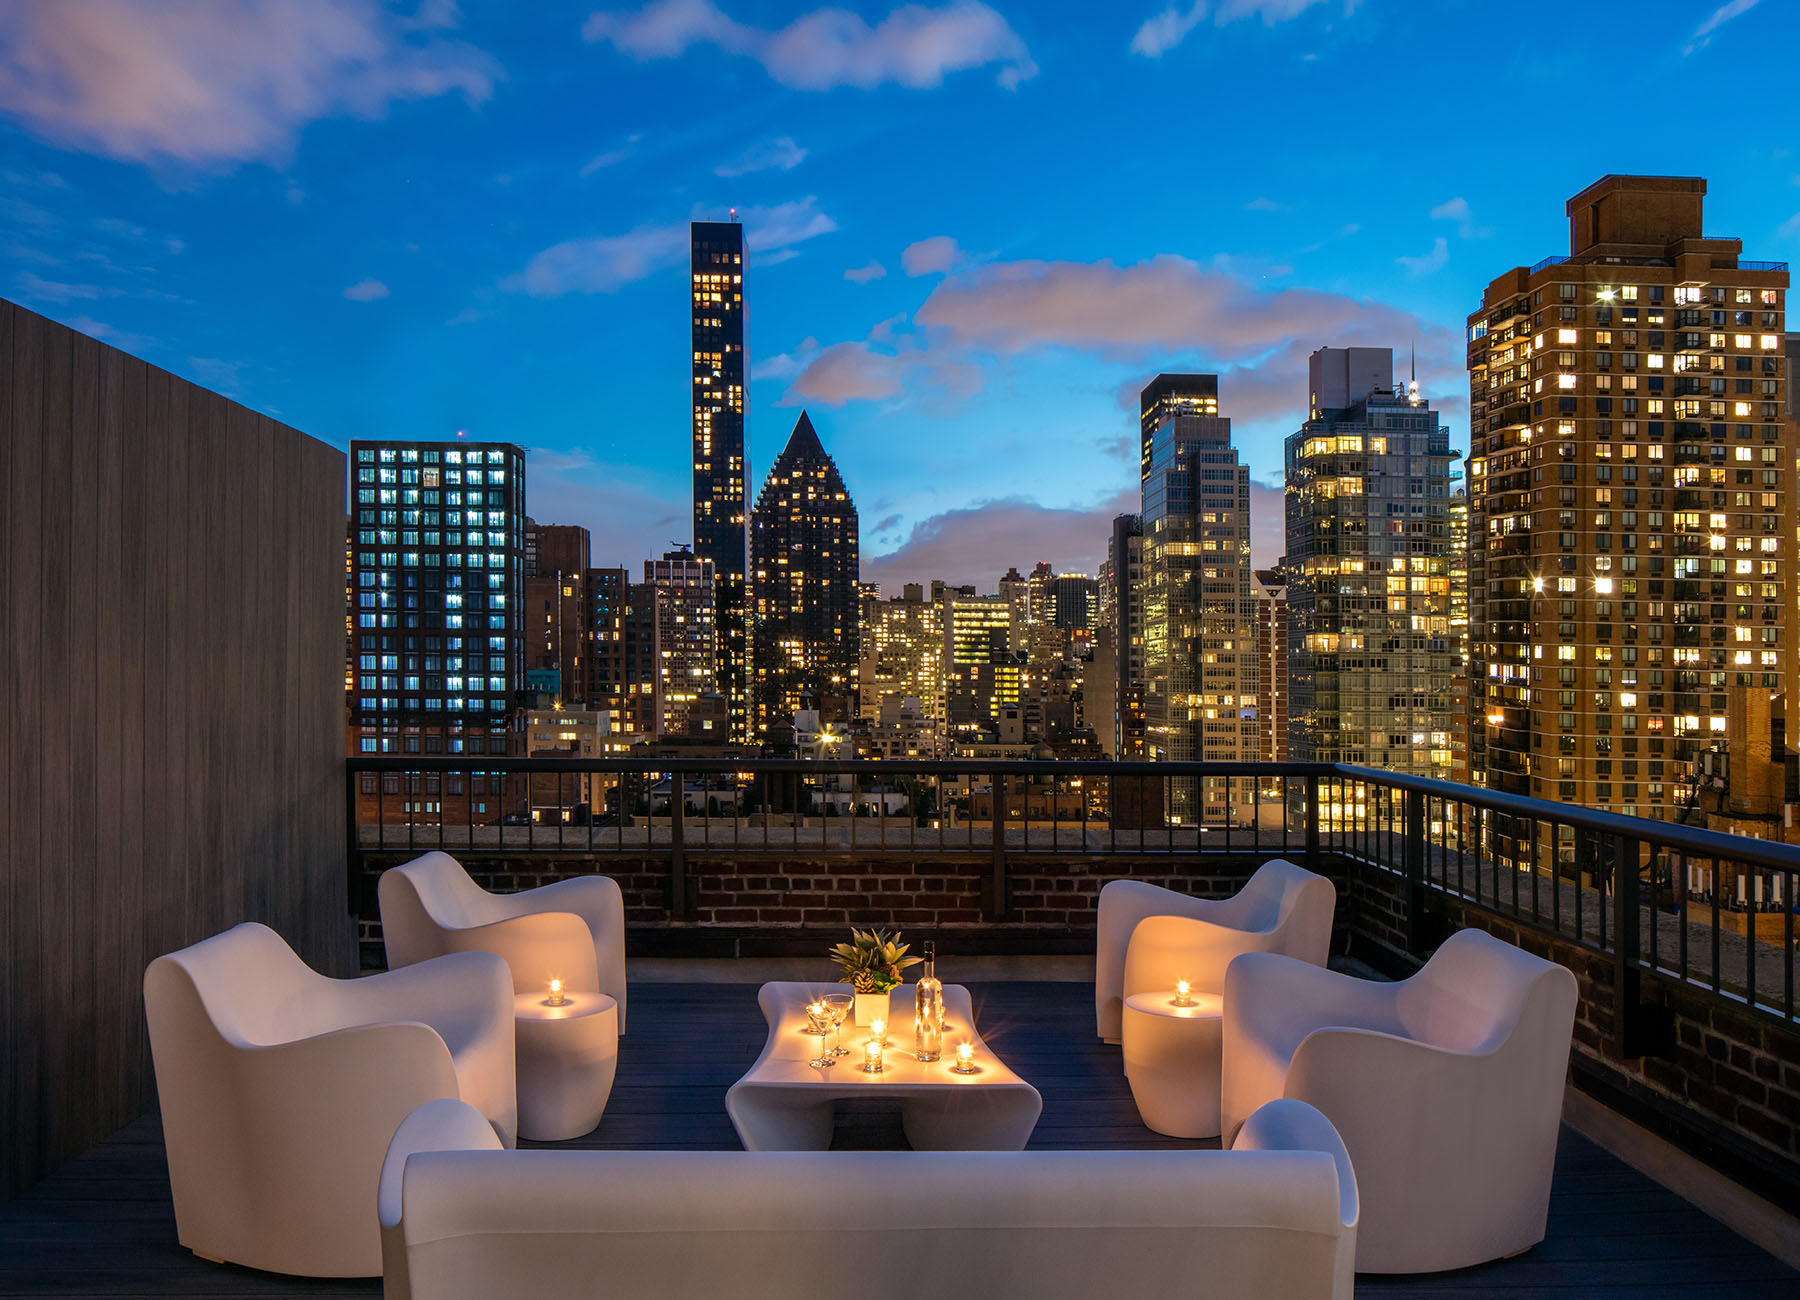 AKA Sutton Place exterior patio for penthouse at dusk with views of the NYC skyline